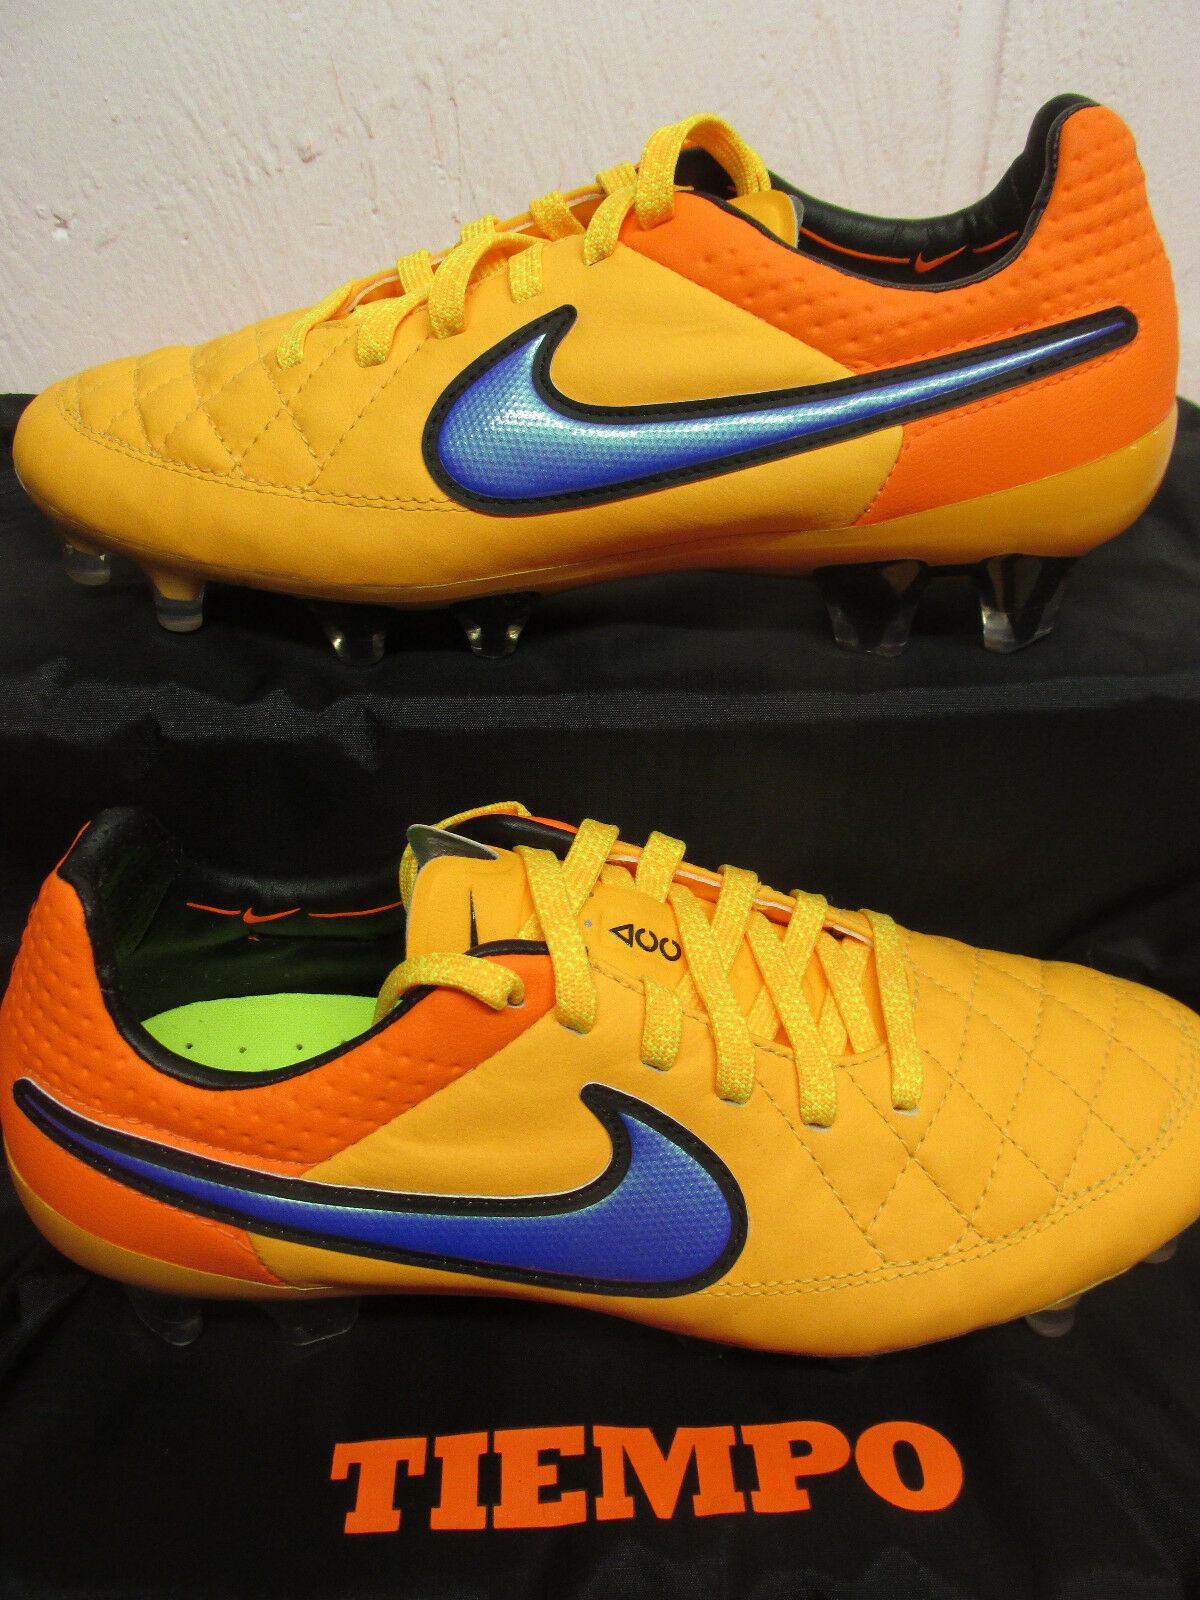 Nike tiempo legend V FG mens football boots 631518 858 soccer cleats firm ground